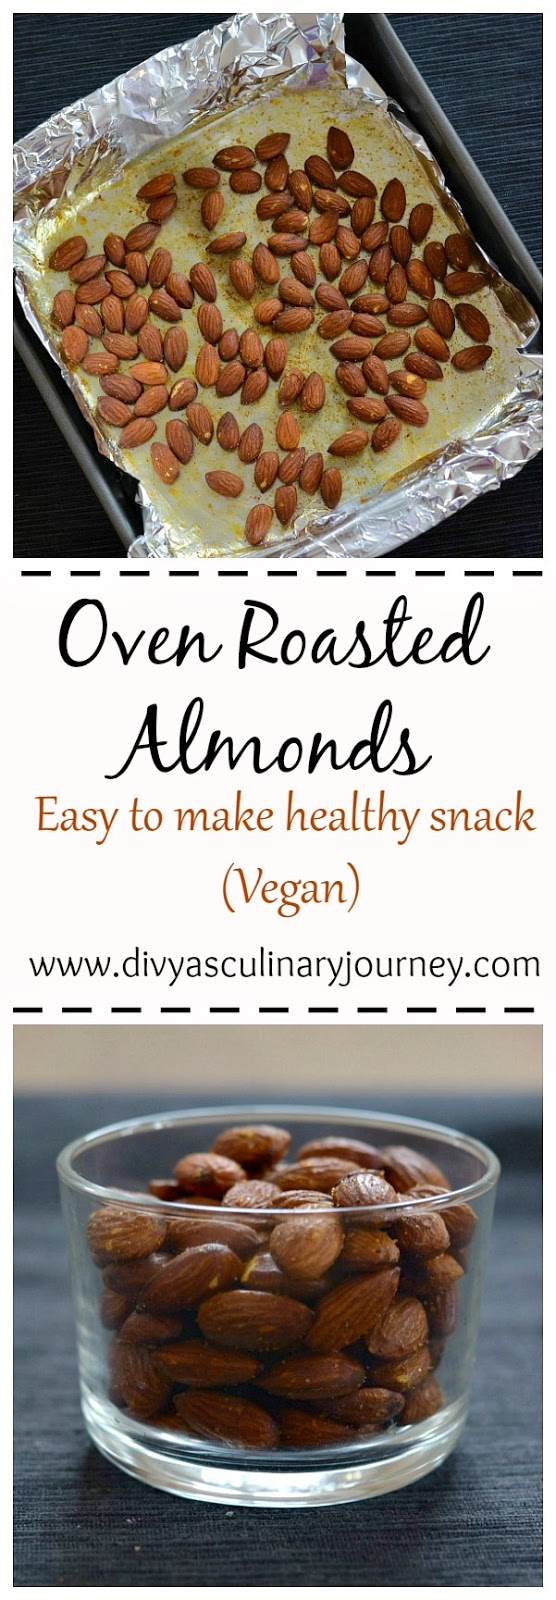 easy oven roasted almonds recipe